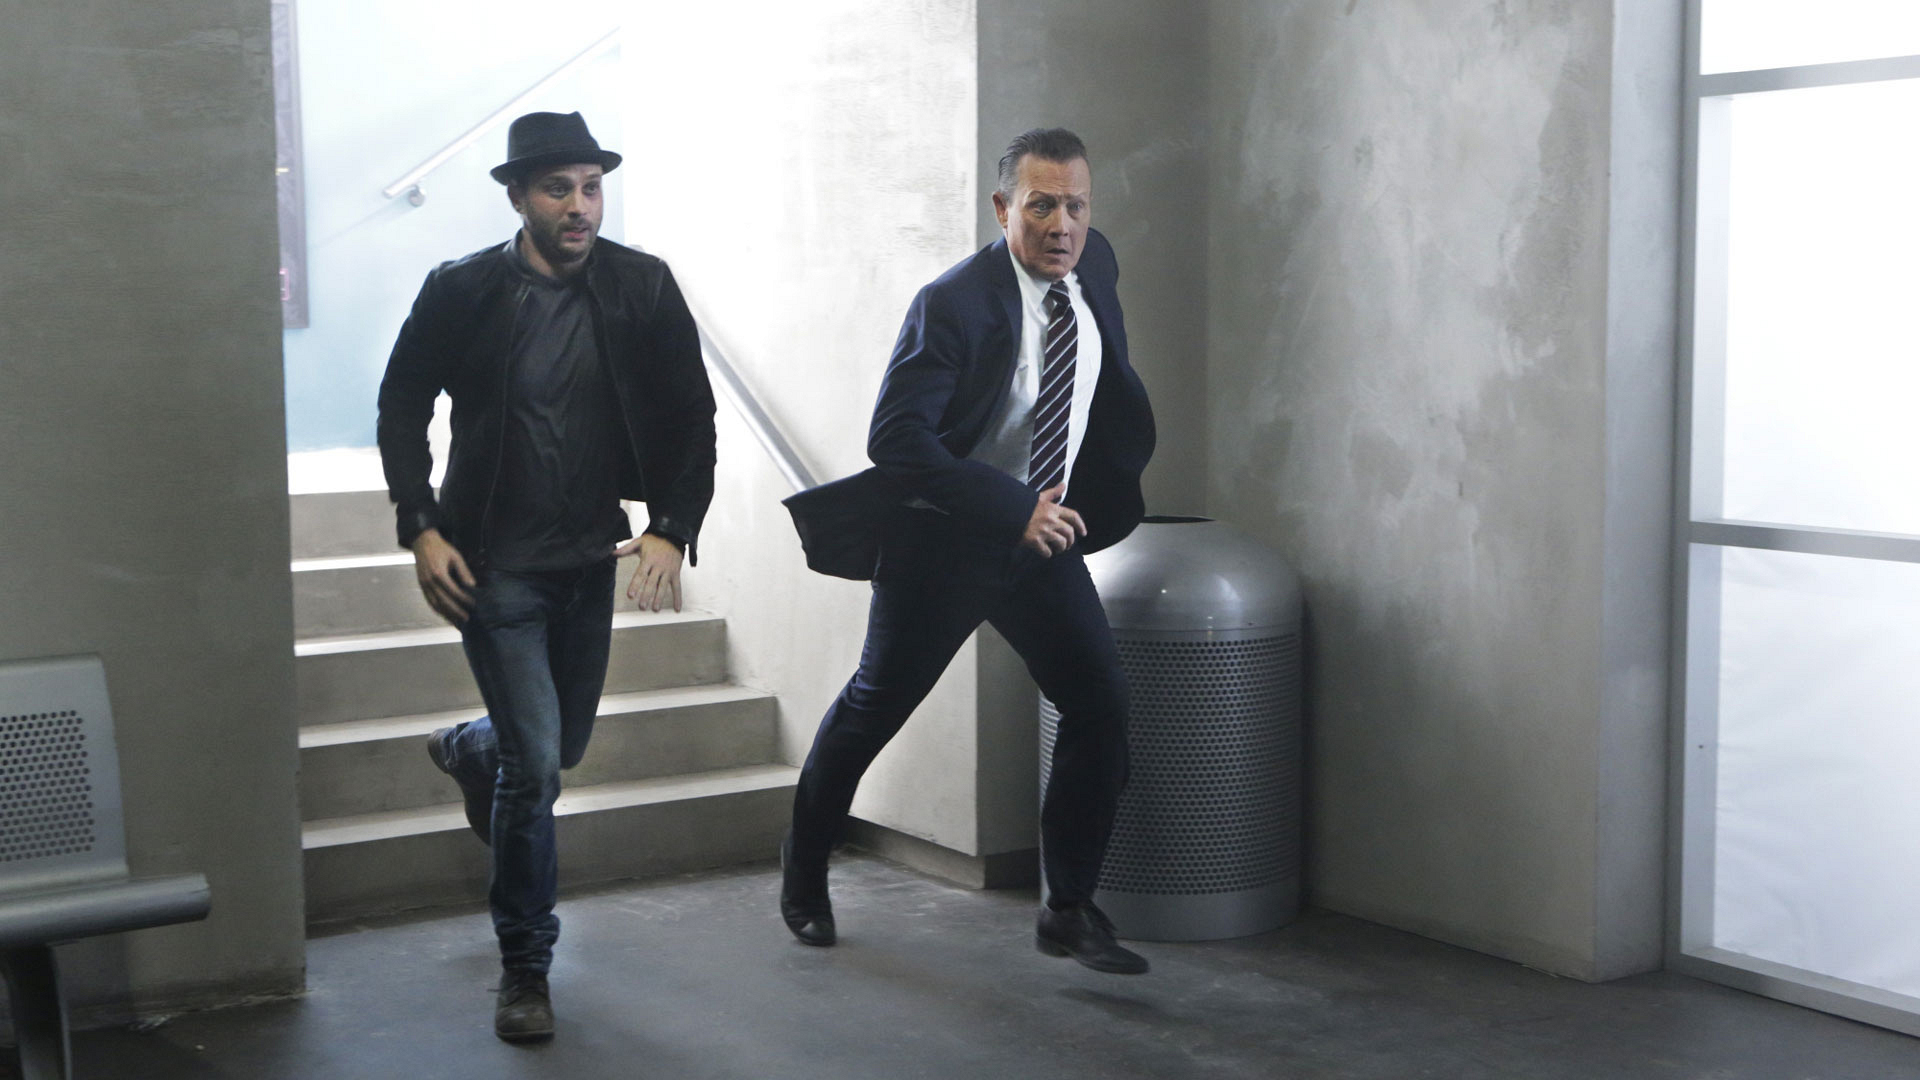 Eddie Kaye Thomas as Toby Curtis and Robert Patrick as Agent Cabe Gallo